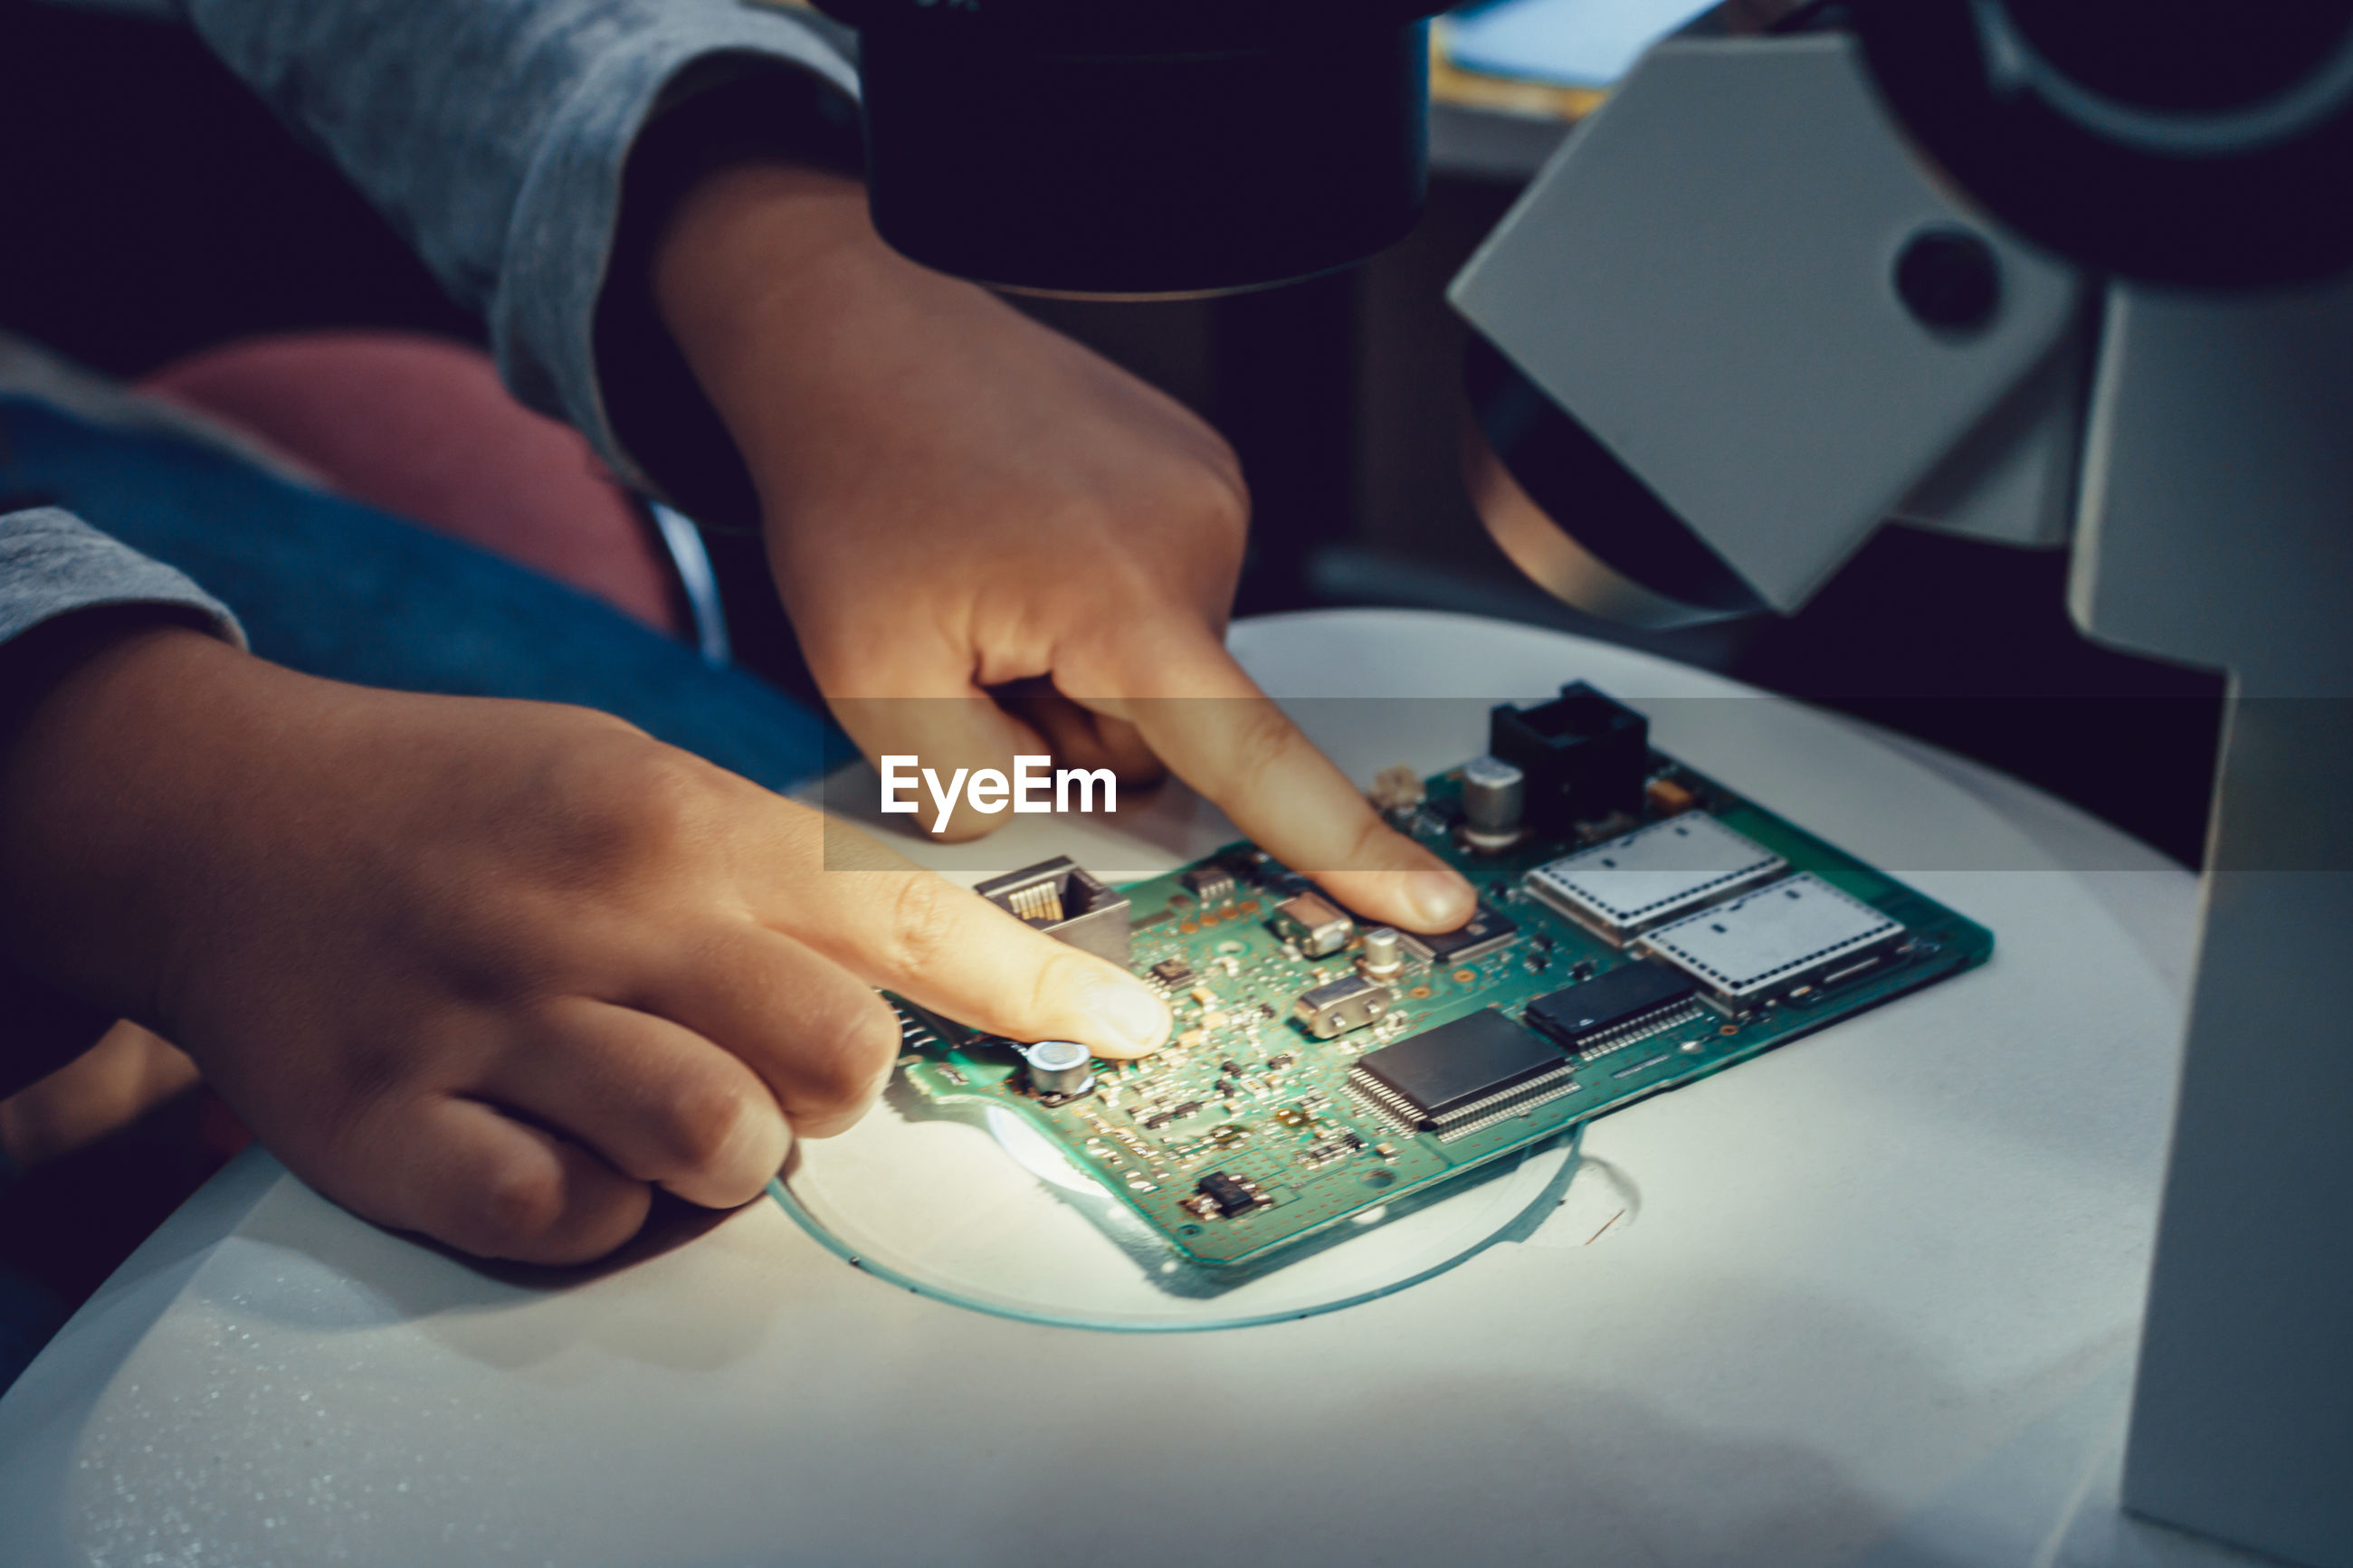 Cropped image of technician adjusting circuit board on microscope slide indoors